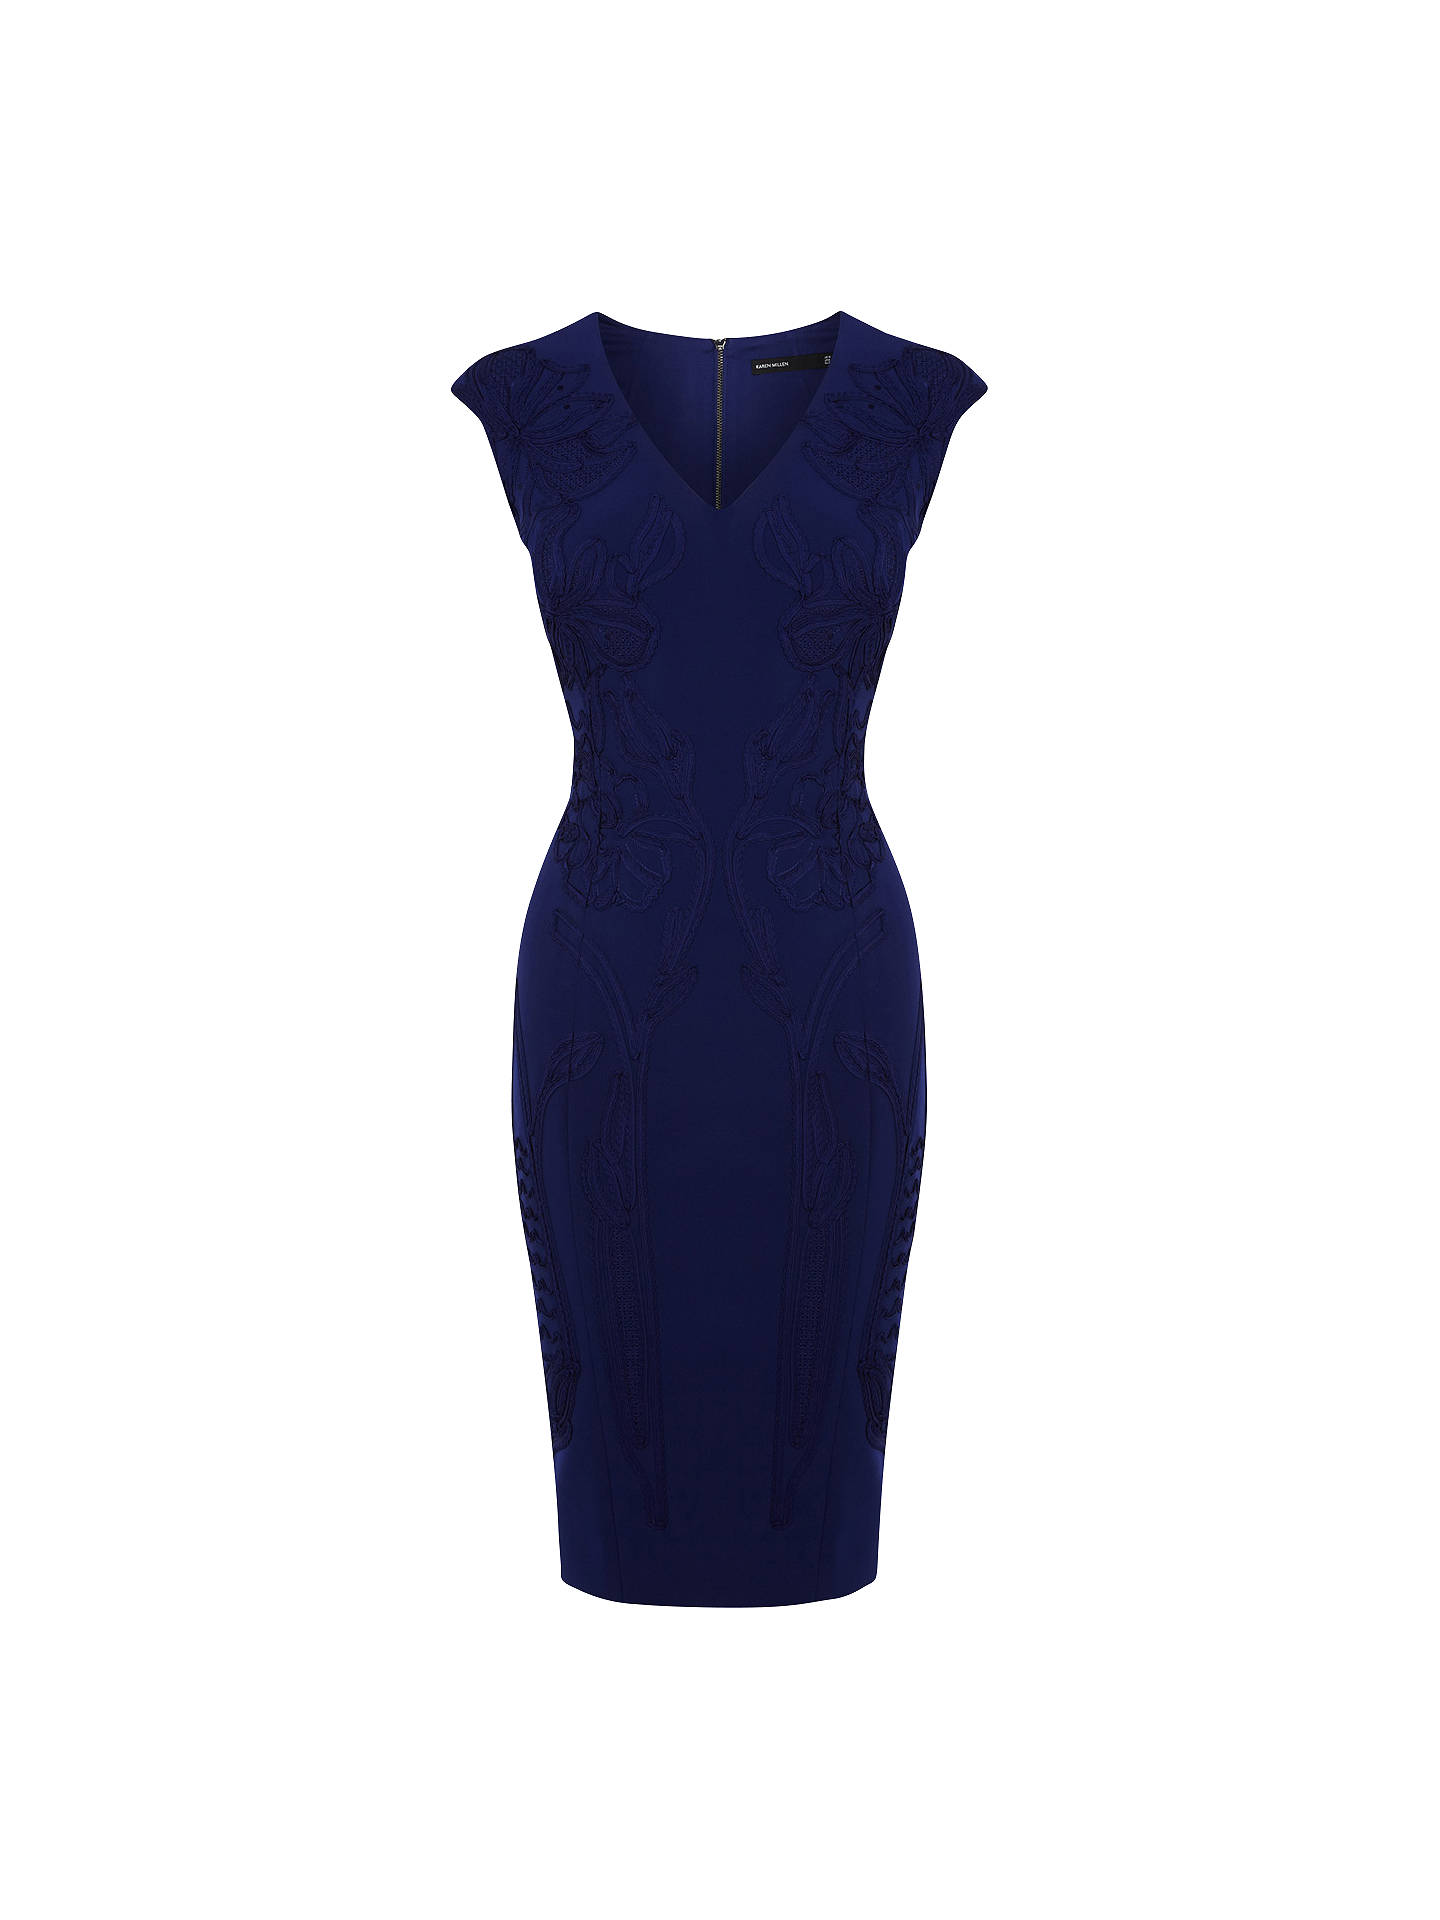 fdb435c0a80 ... discount code for buy karen millen floral applique dress blue 6 online  at johnlewis 0bcb0 cb085